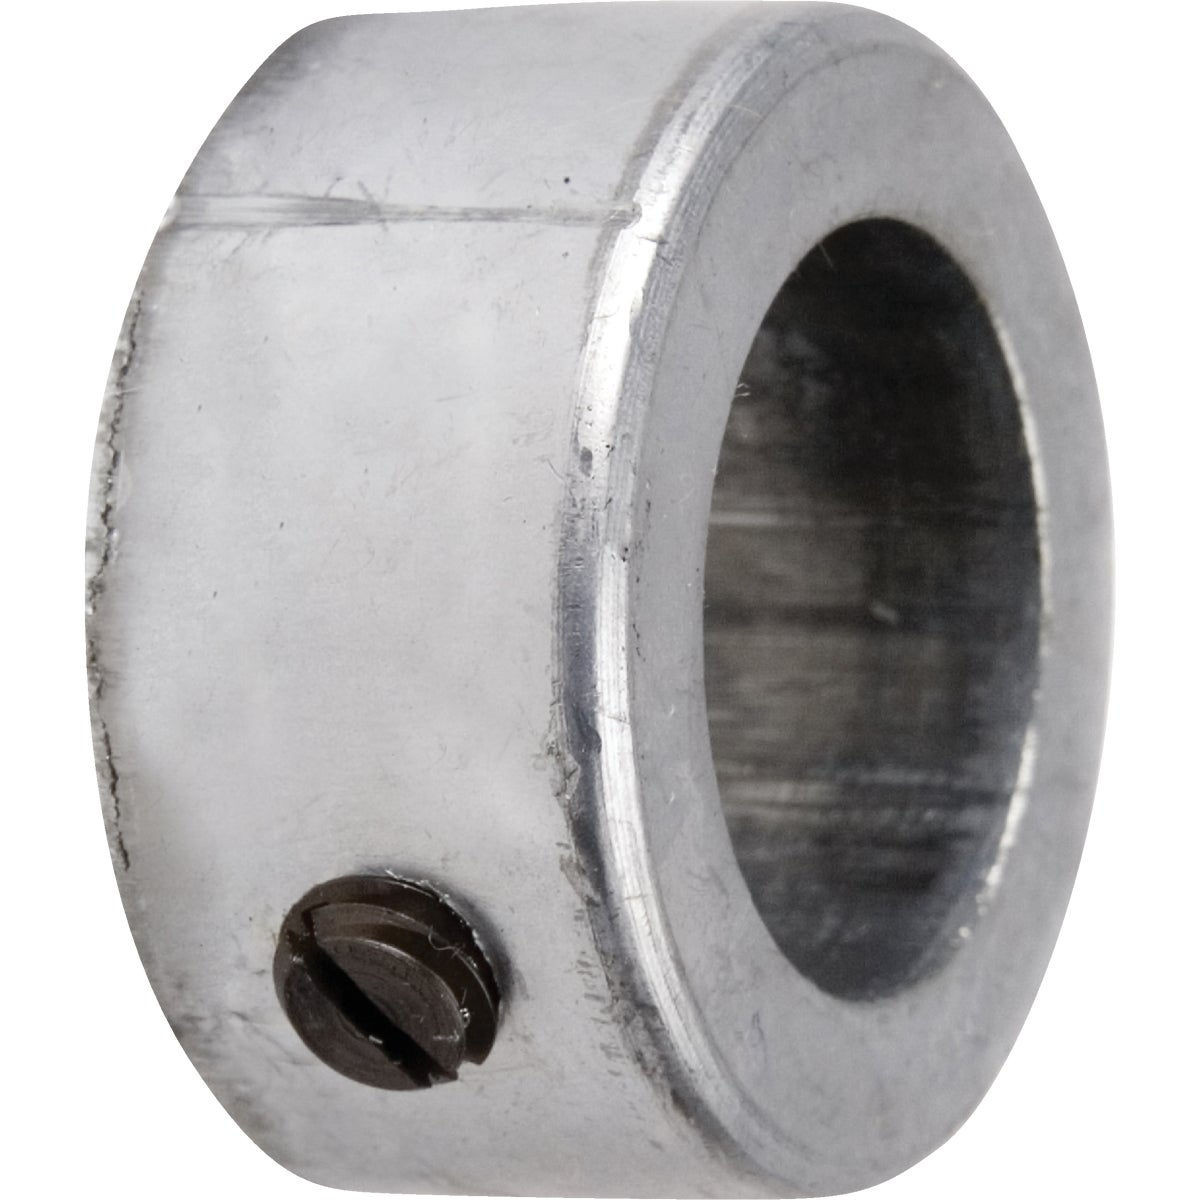 "3/8"" SHAFT COLLAR - 3006 by Chicago Die Casting"